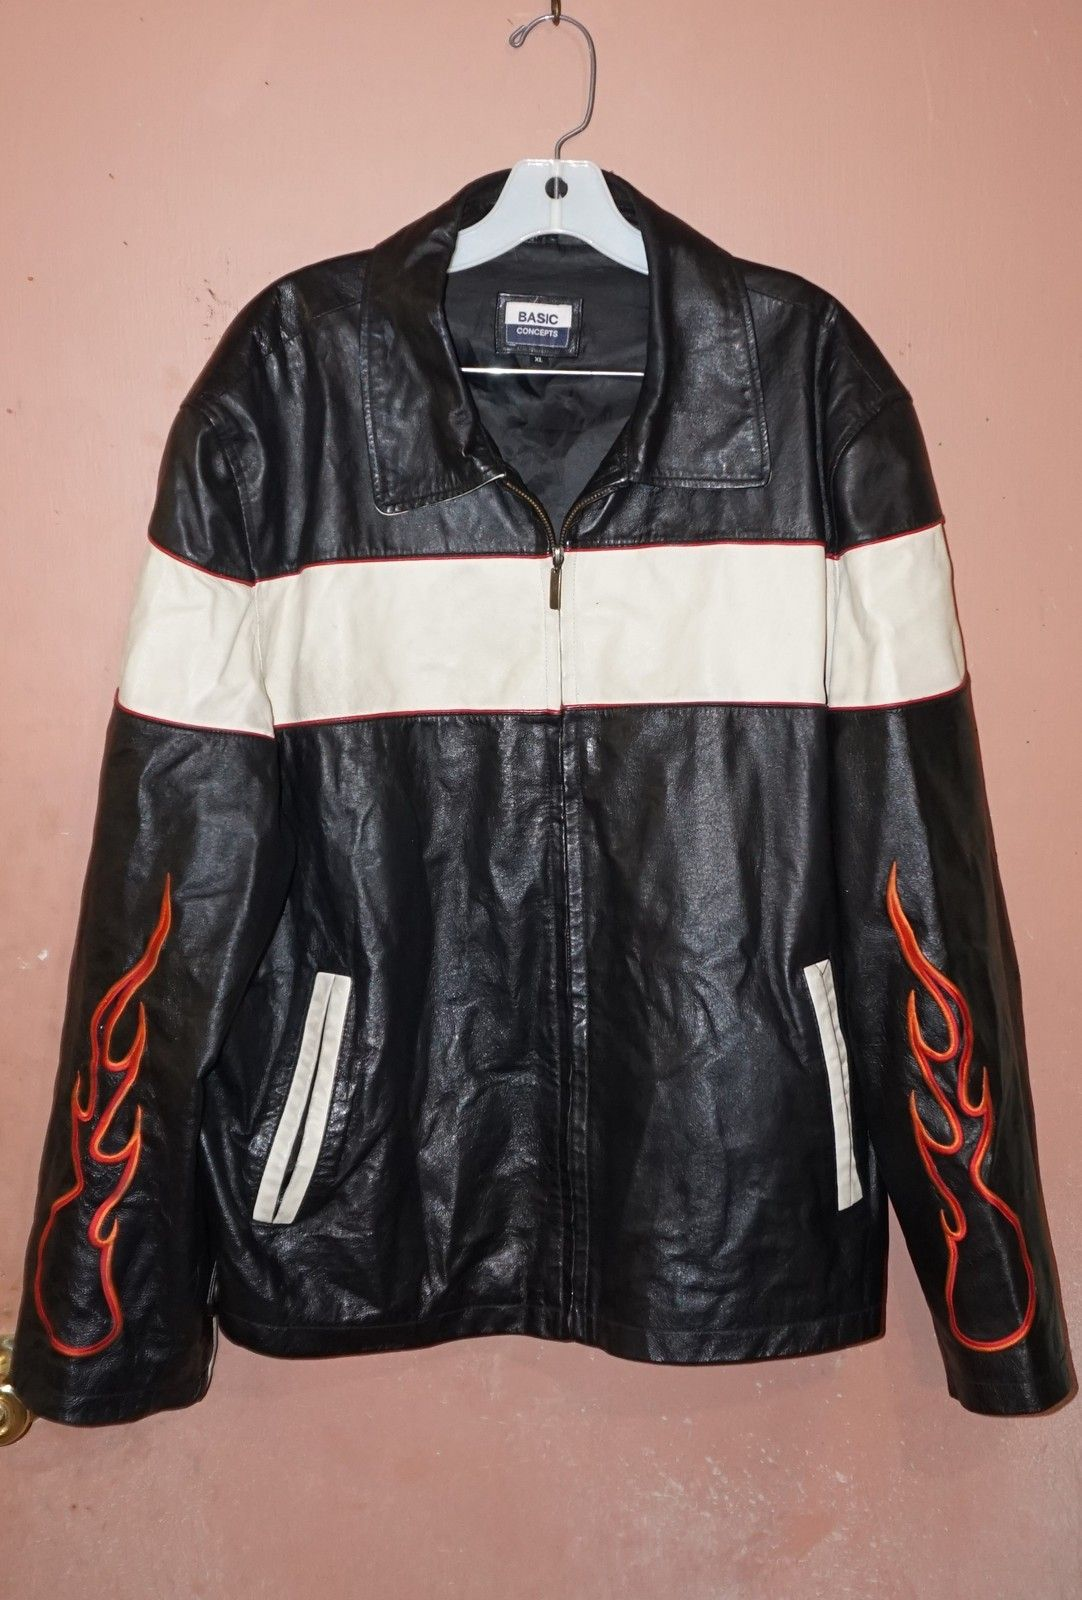 Once Again Vintage Motorcycle Leather Jacket W Flames Check It Out In Once Again S Bonanza Booth Motorcycle Style Fashion Leather Motorcycle Jacket [ 1600 x 1082 Pixel ]